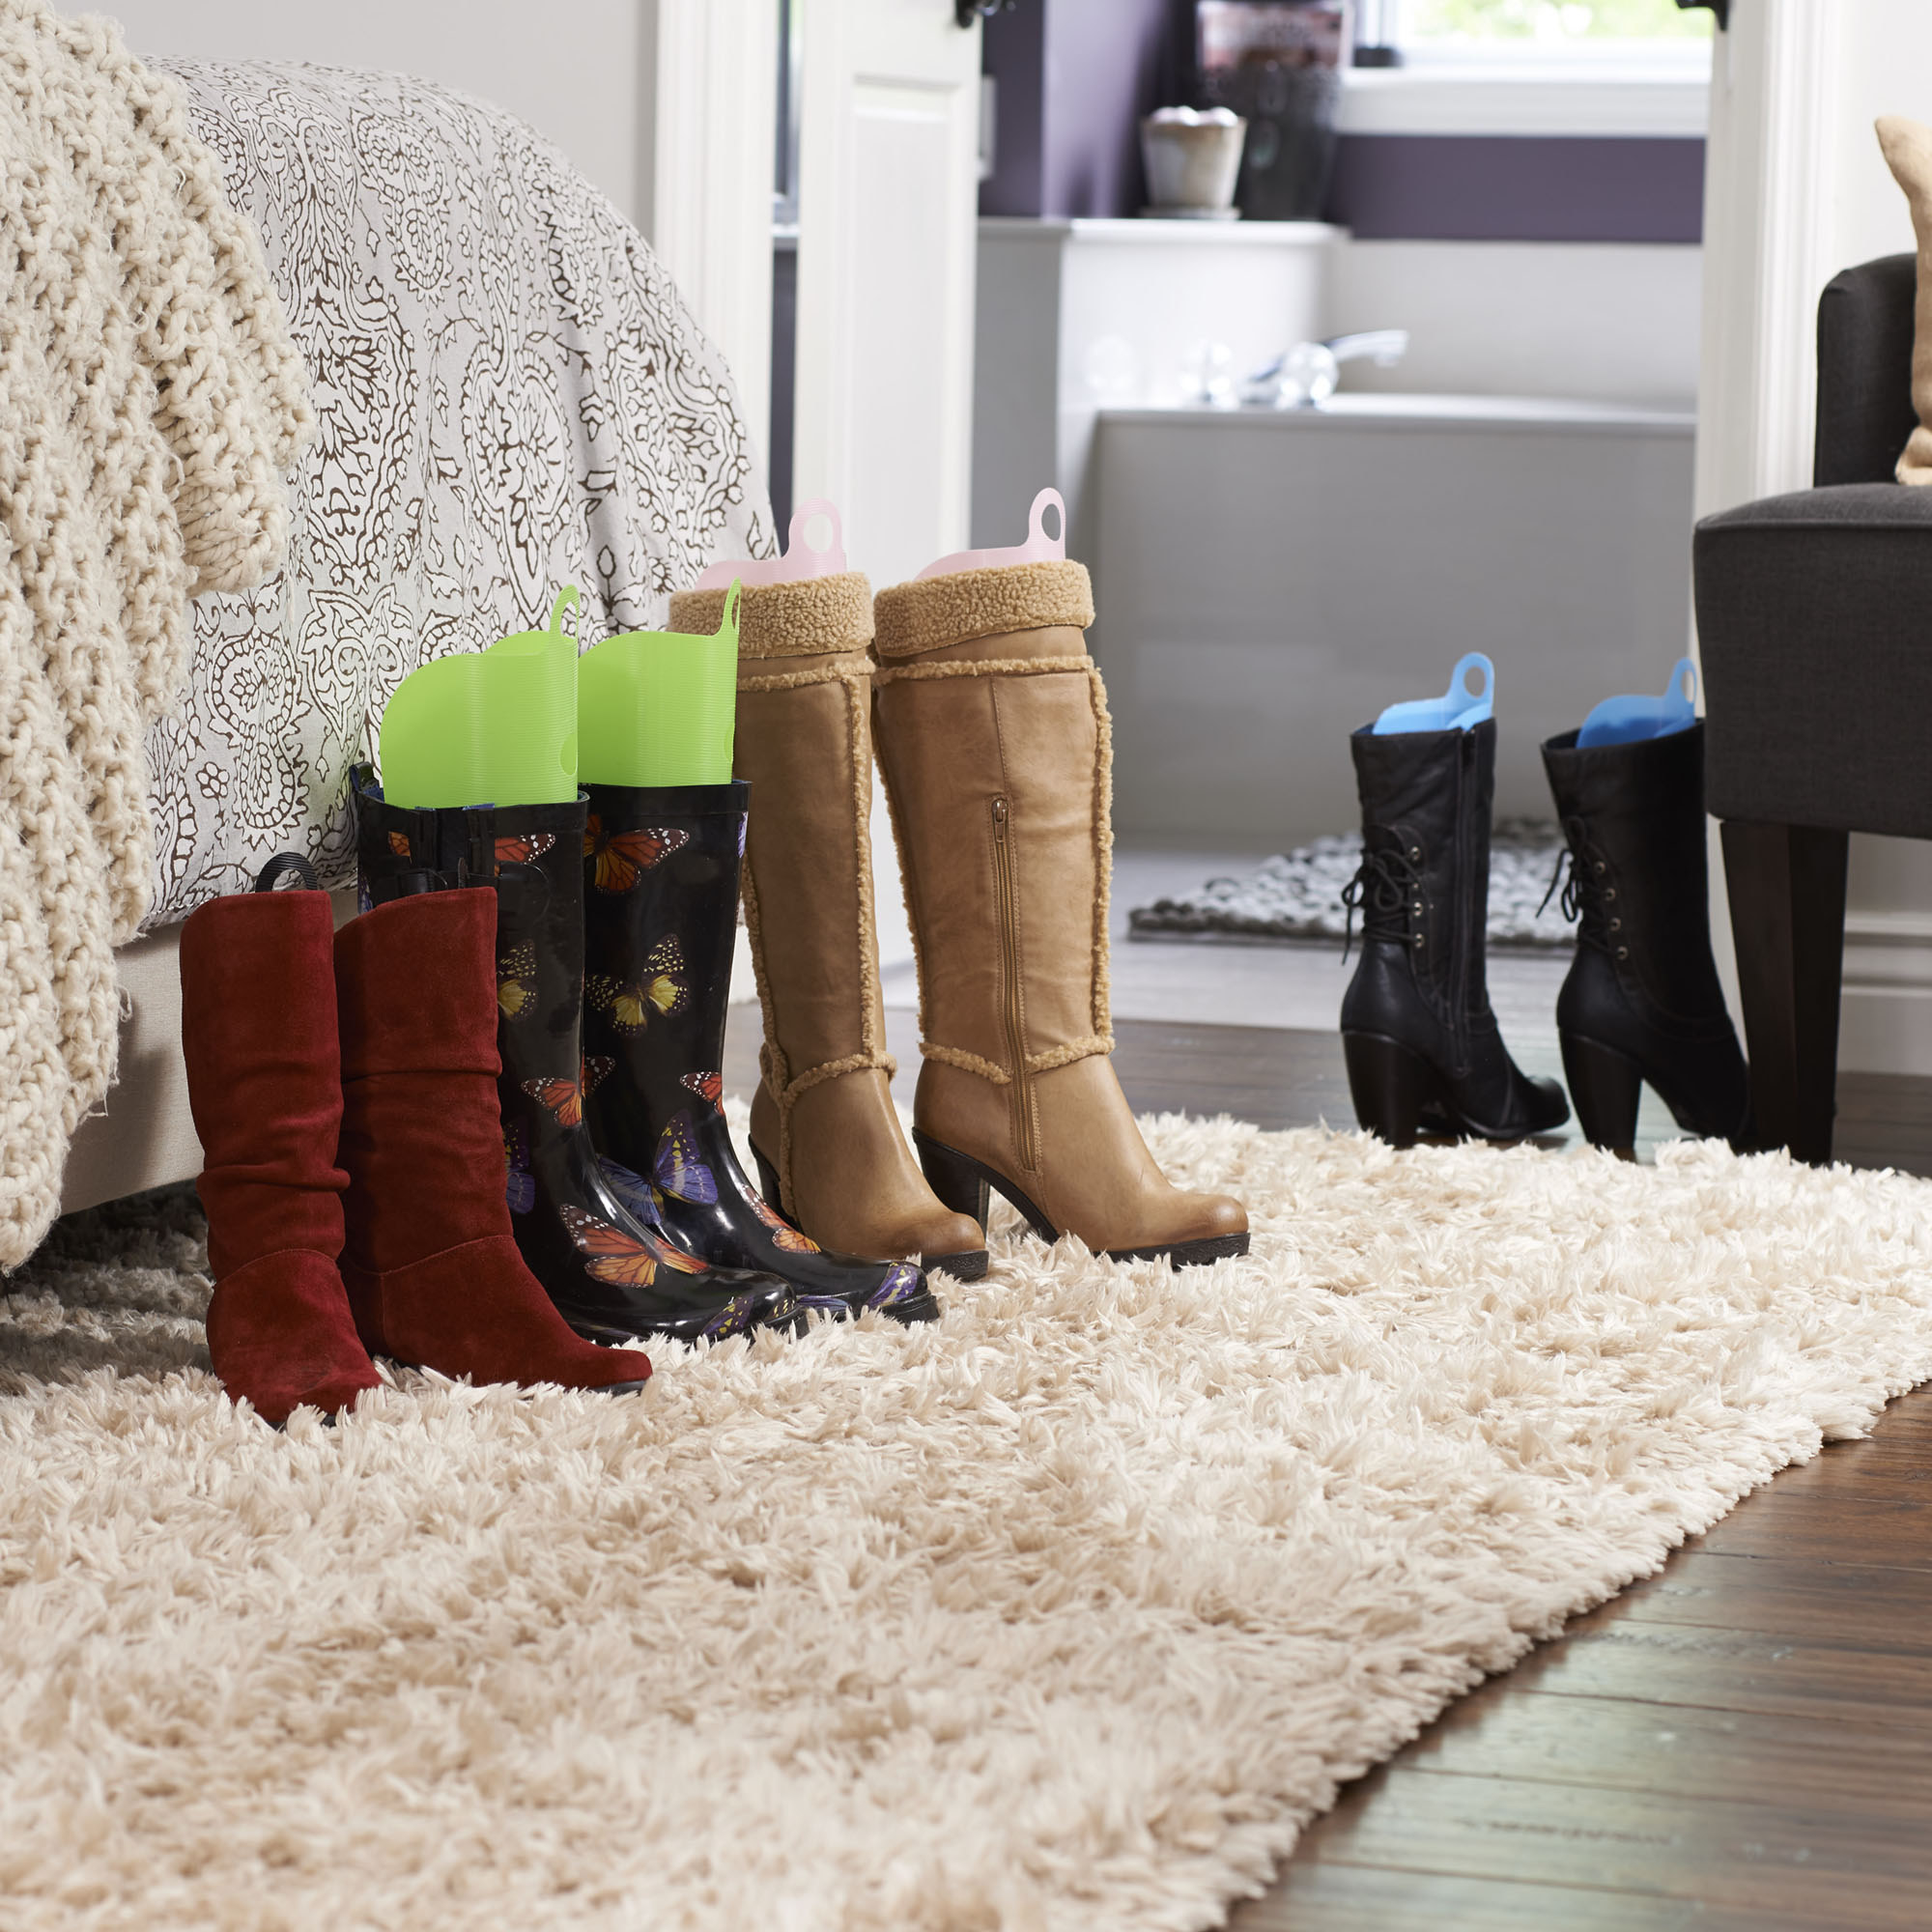 Boots with colorful boot shapers in them